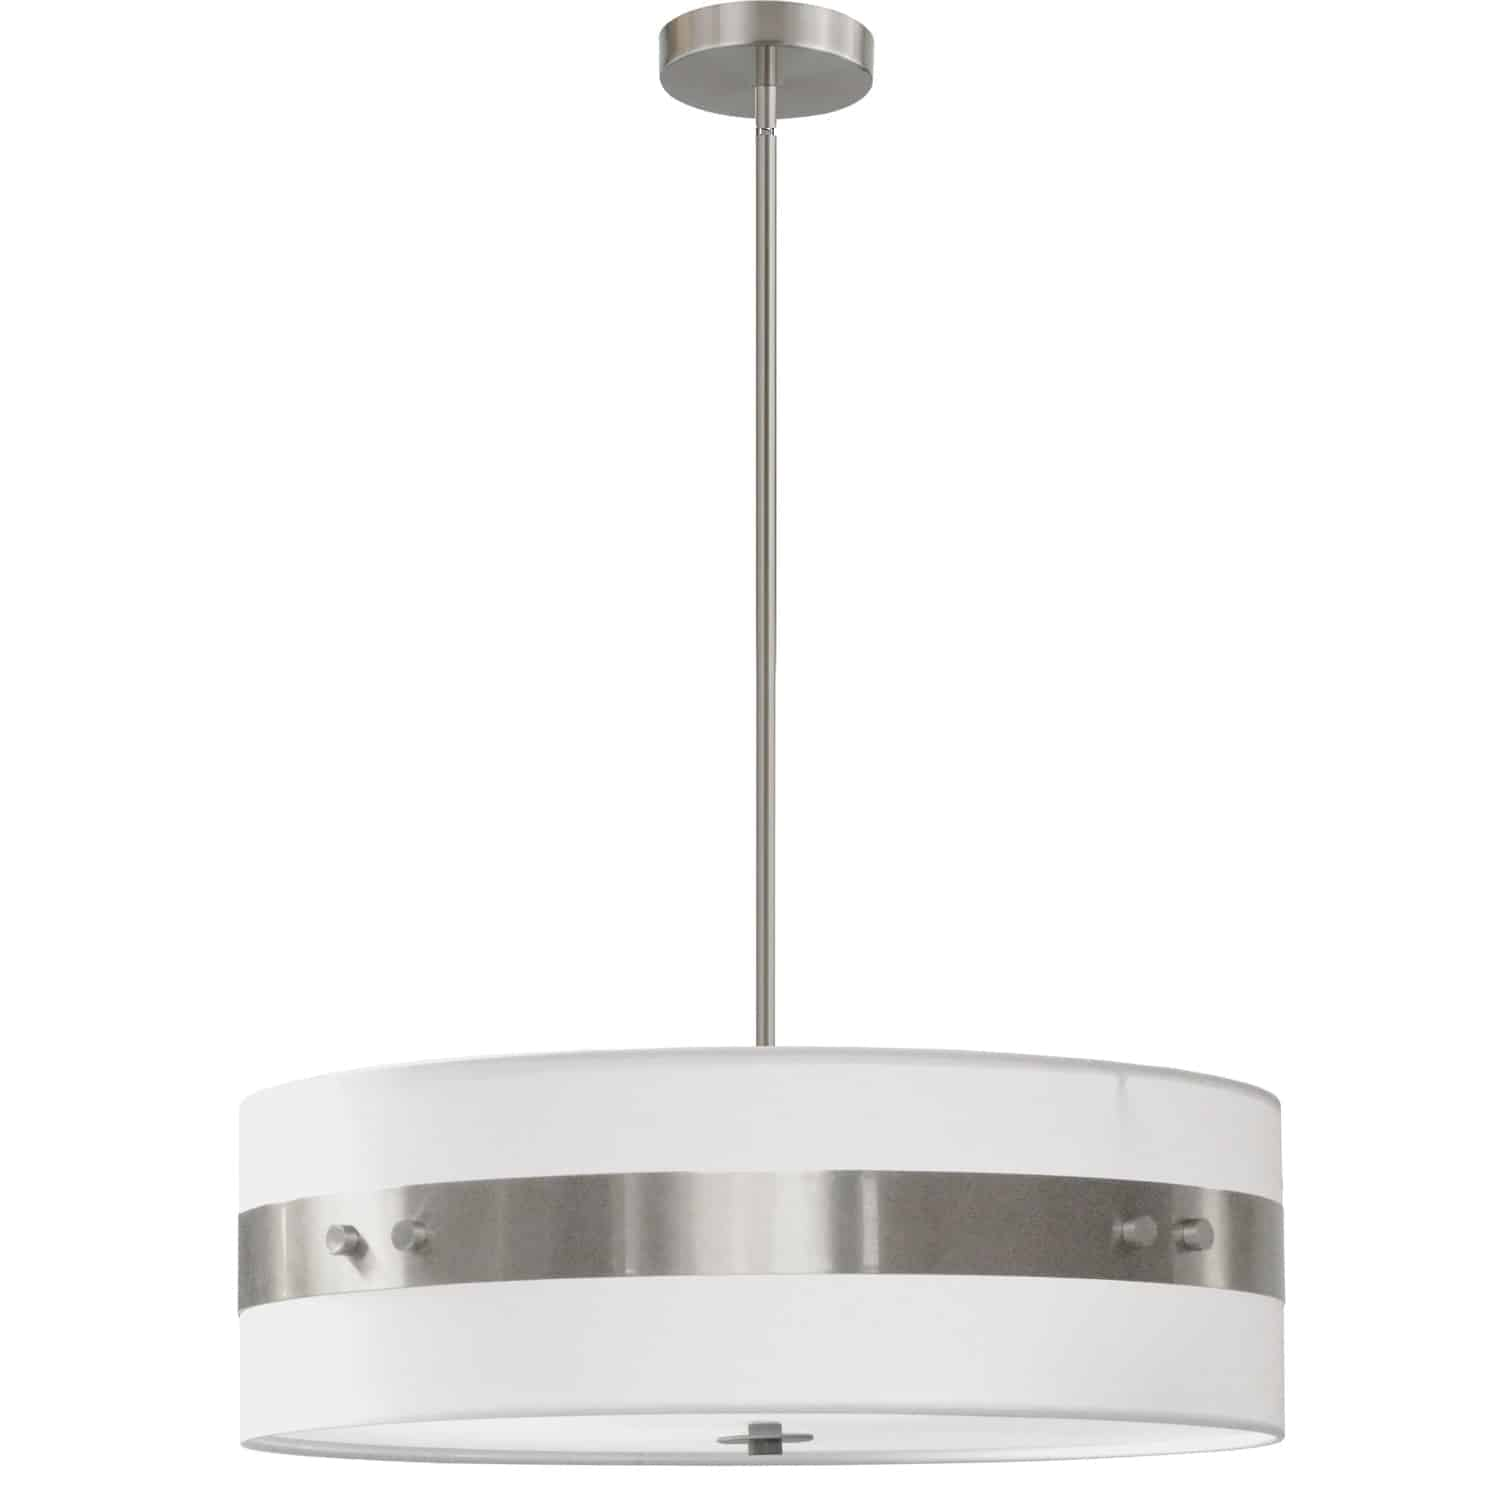 4 Light Incandescent Pendant Satin Chrome Finish with White Shade